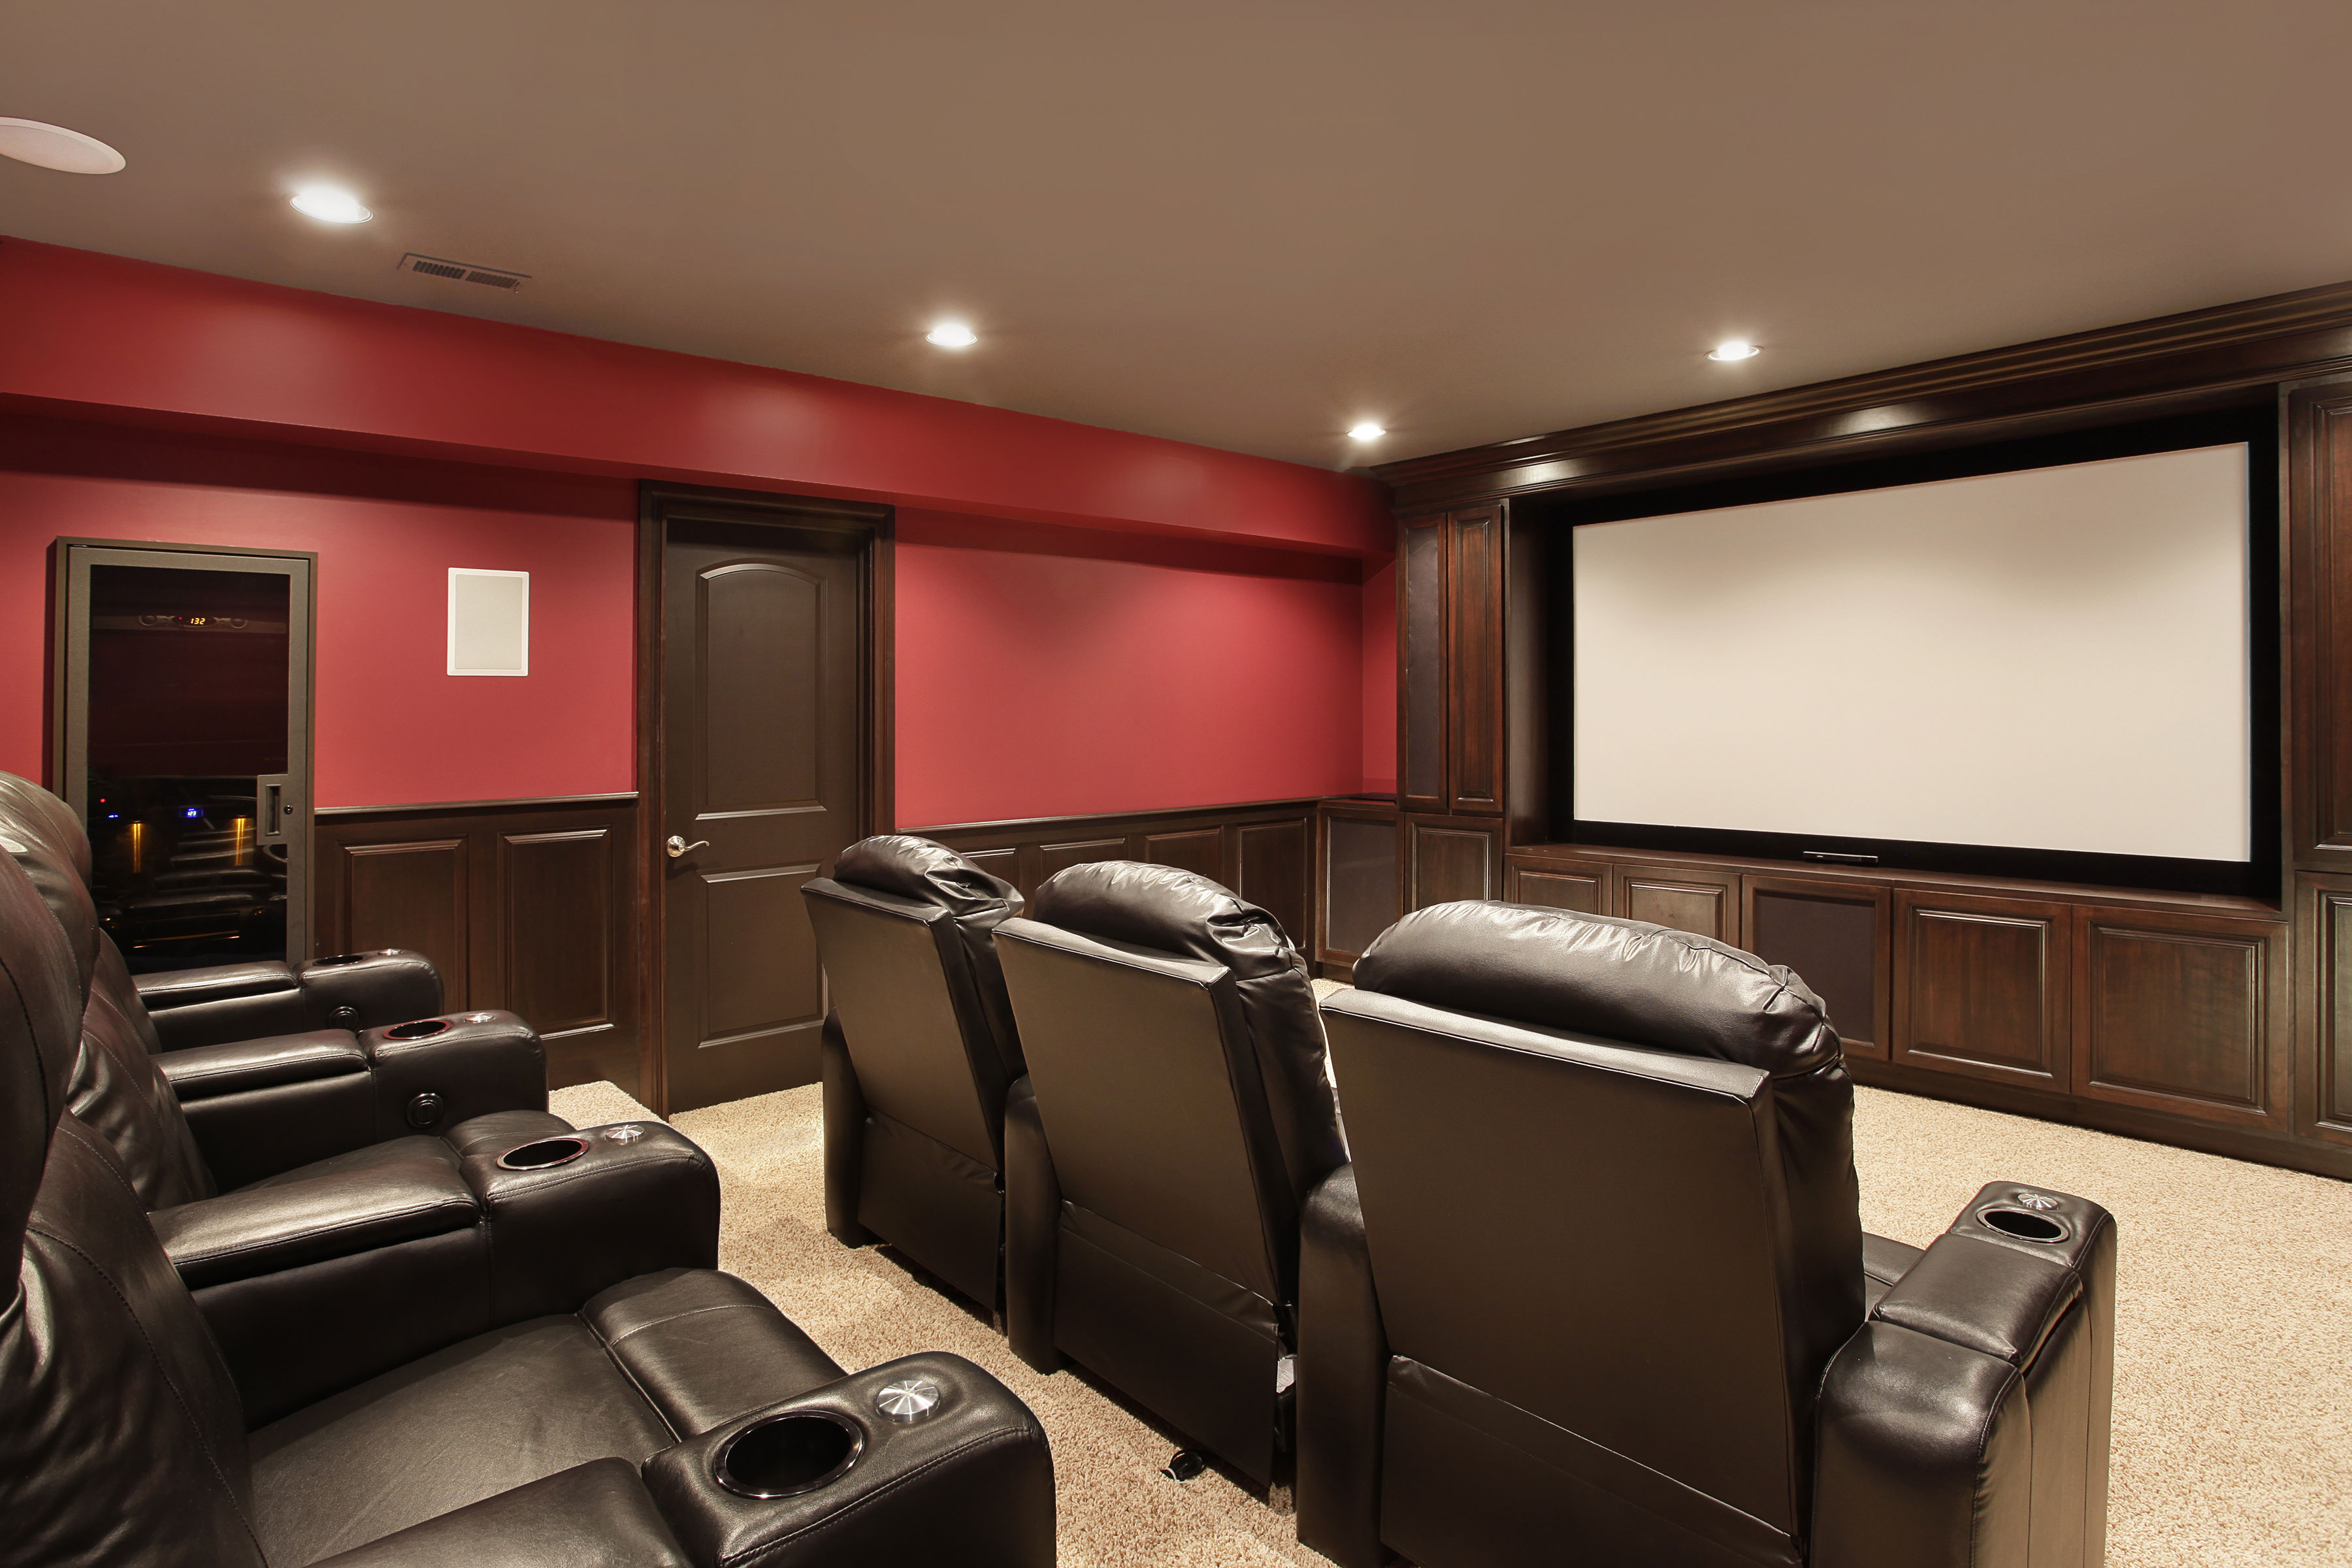 Services Maximum Security And Media How To Install Home Theater System We All Your Components Wiring In A Professional Manner For Clean Finish Quality Performance